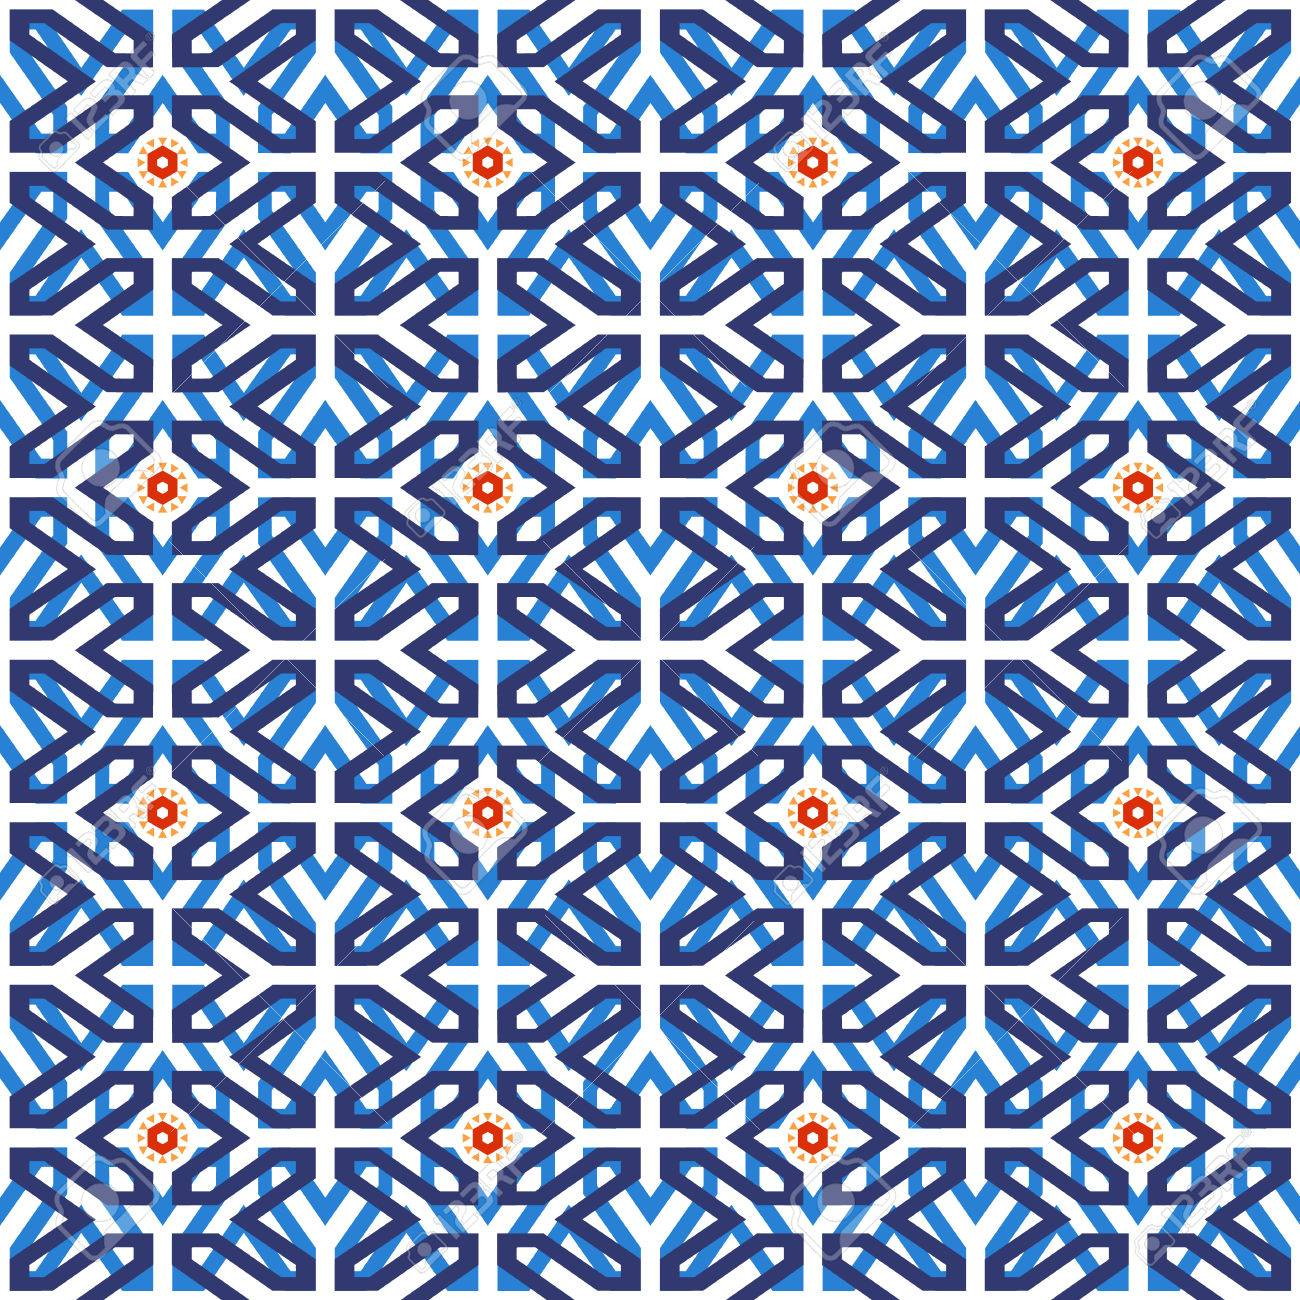 Traditional Arabic Ceramic Mosaic Tile Seamless Pattern Based ...